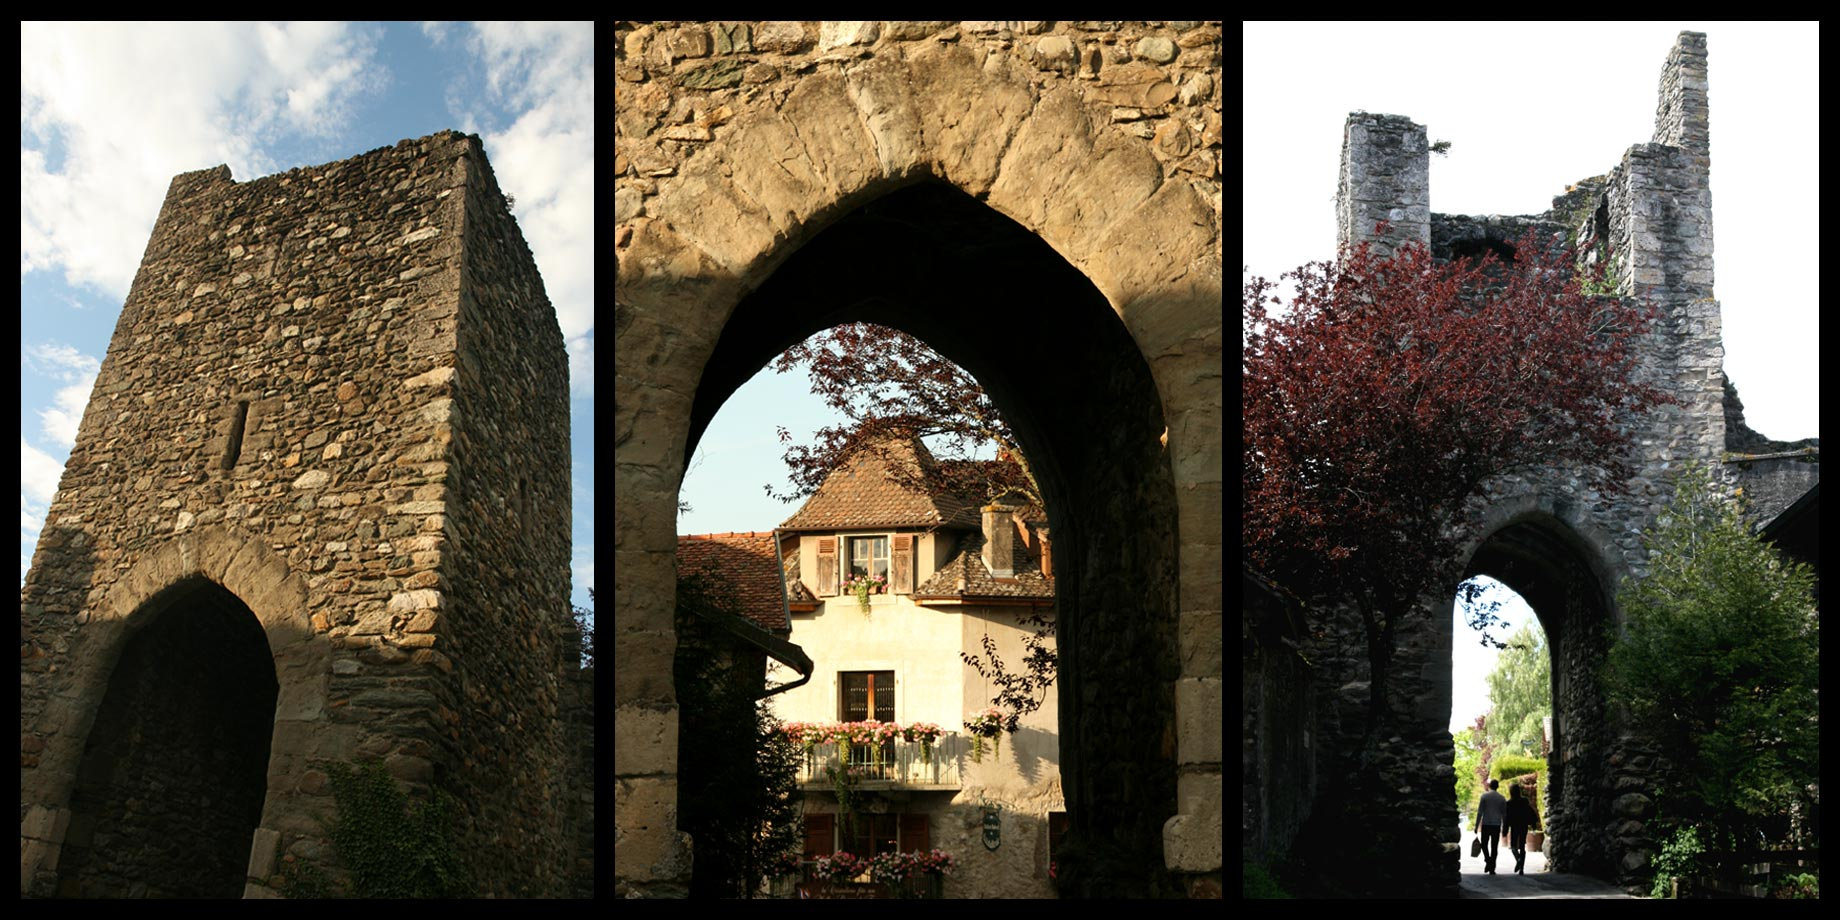 The Gate of Geneva built in the ramparts of the medieval village of Yvoire.